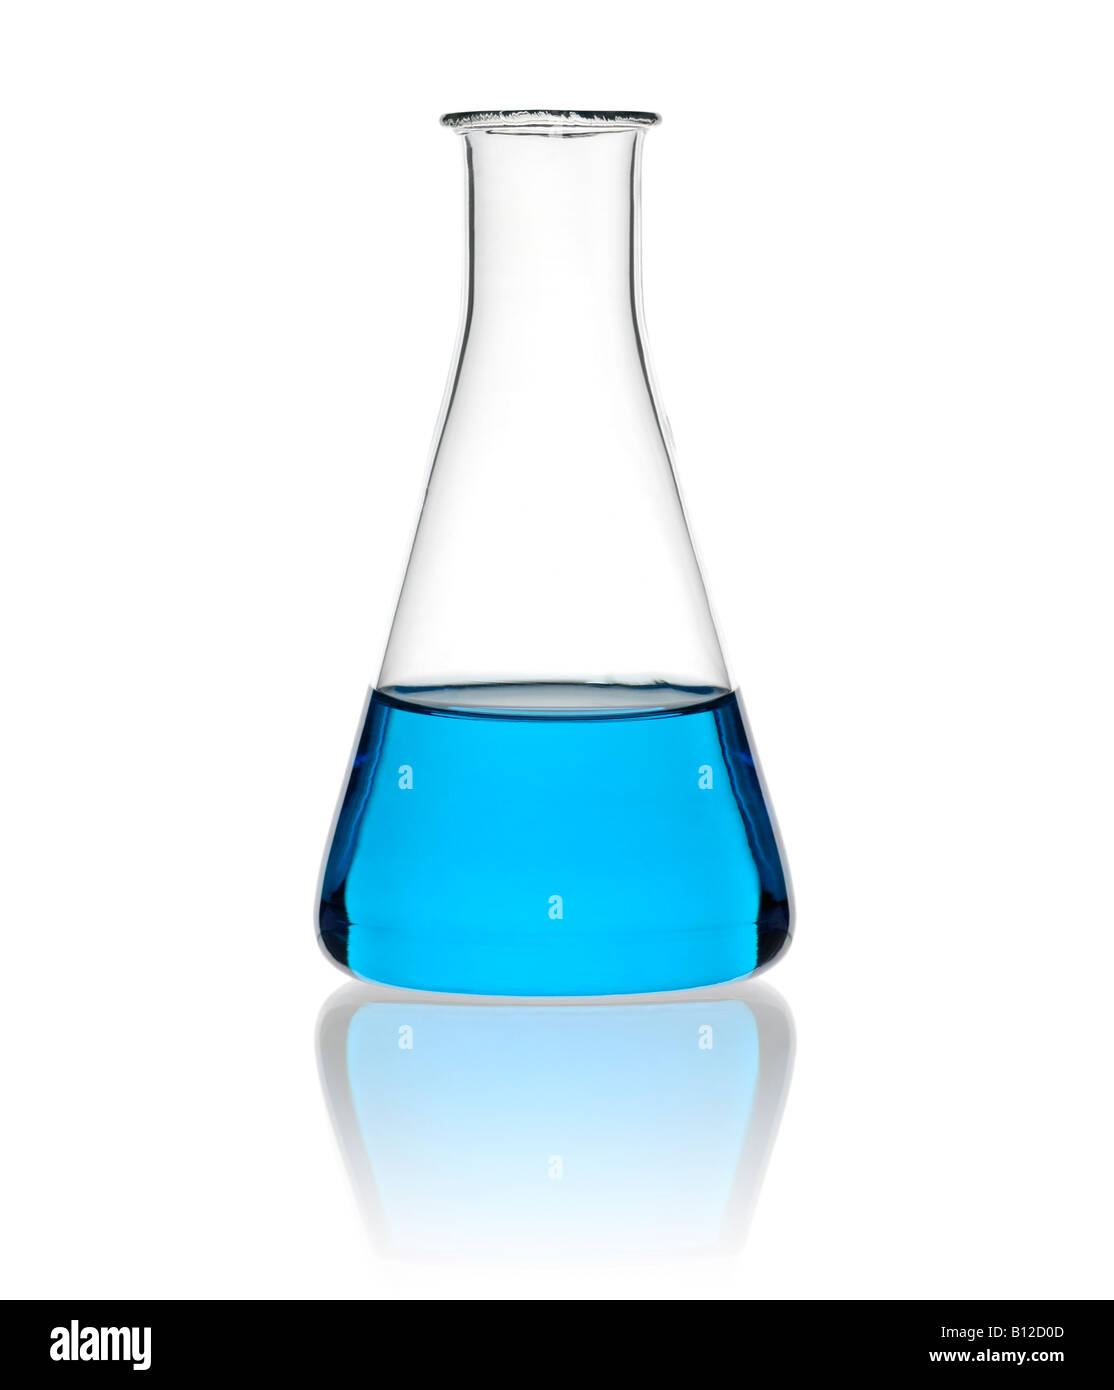 Scientific Conical Flask Filled with Chemicals Close Up Against a White Background - Stock Image